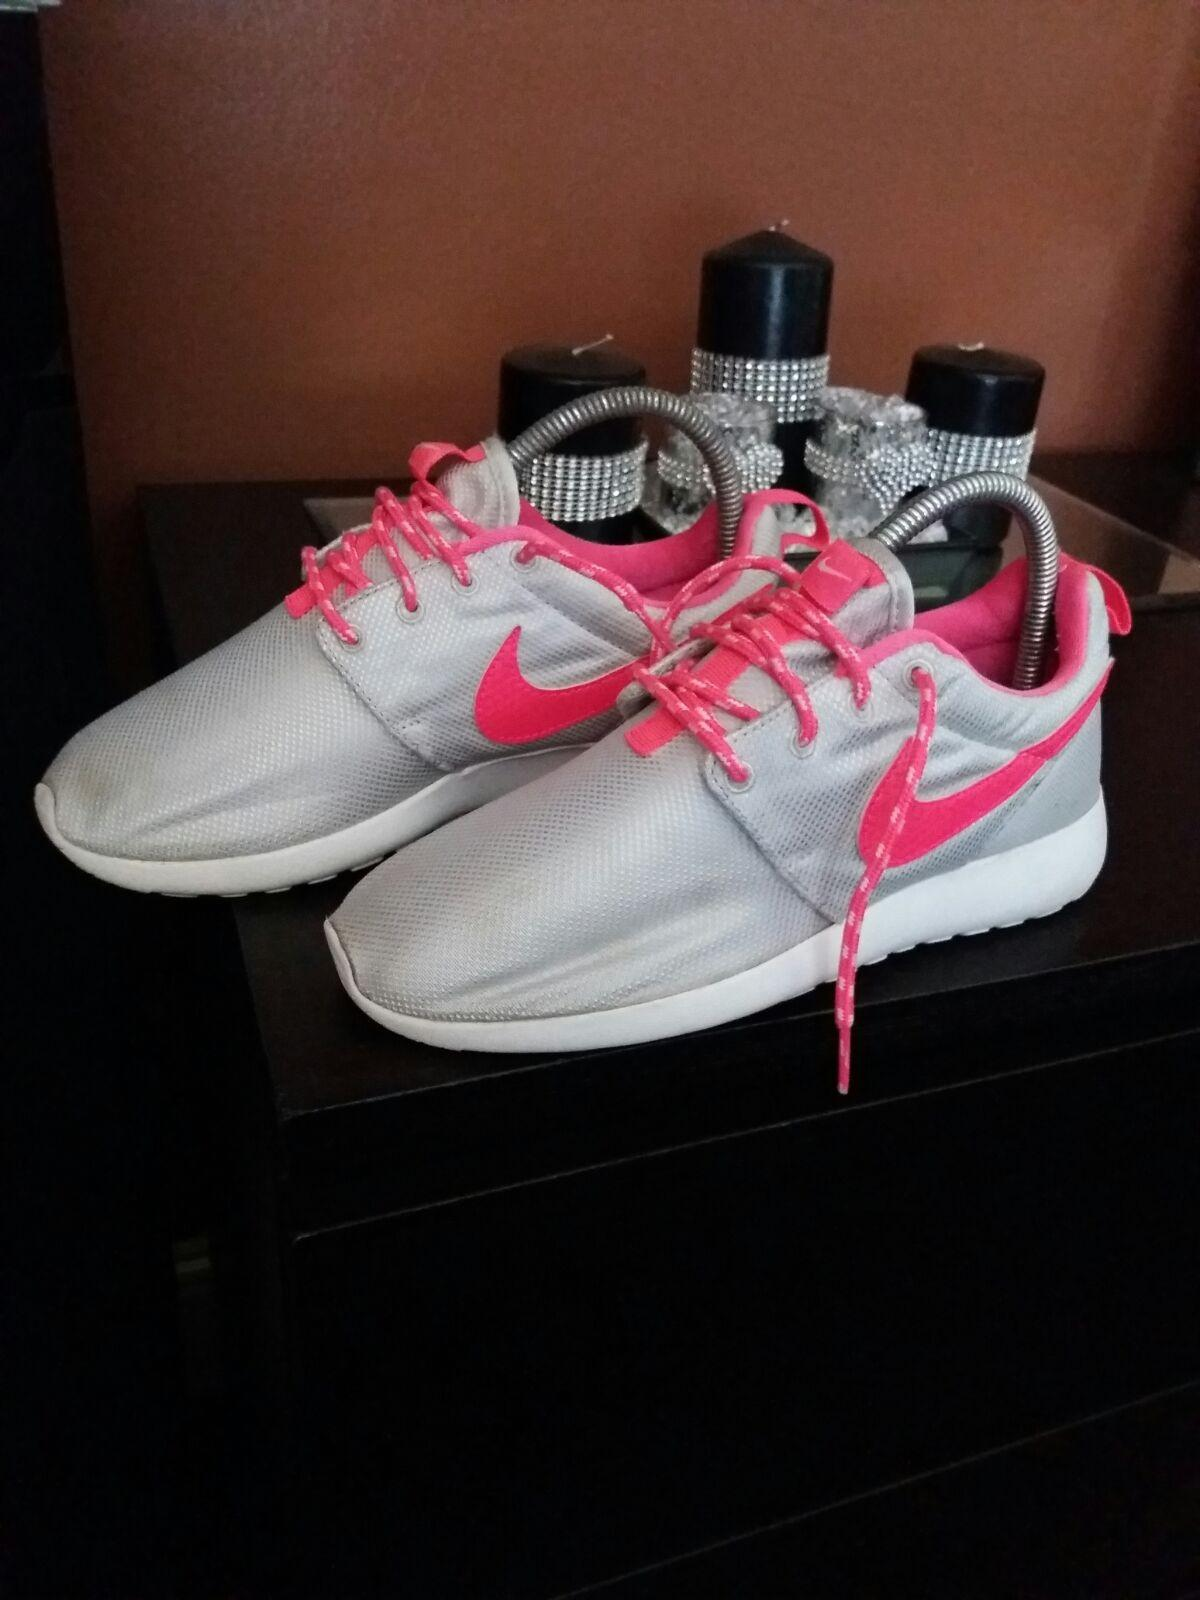 aea48744af5d Nike roshe trainer pink silver in W14 London for £8.00 for sale - Shpock